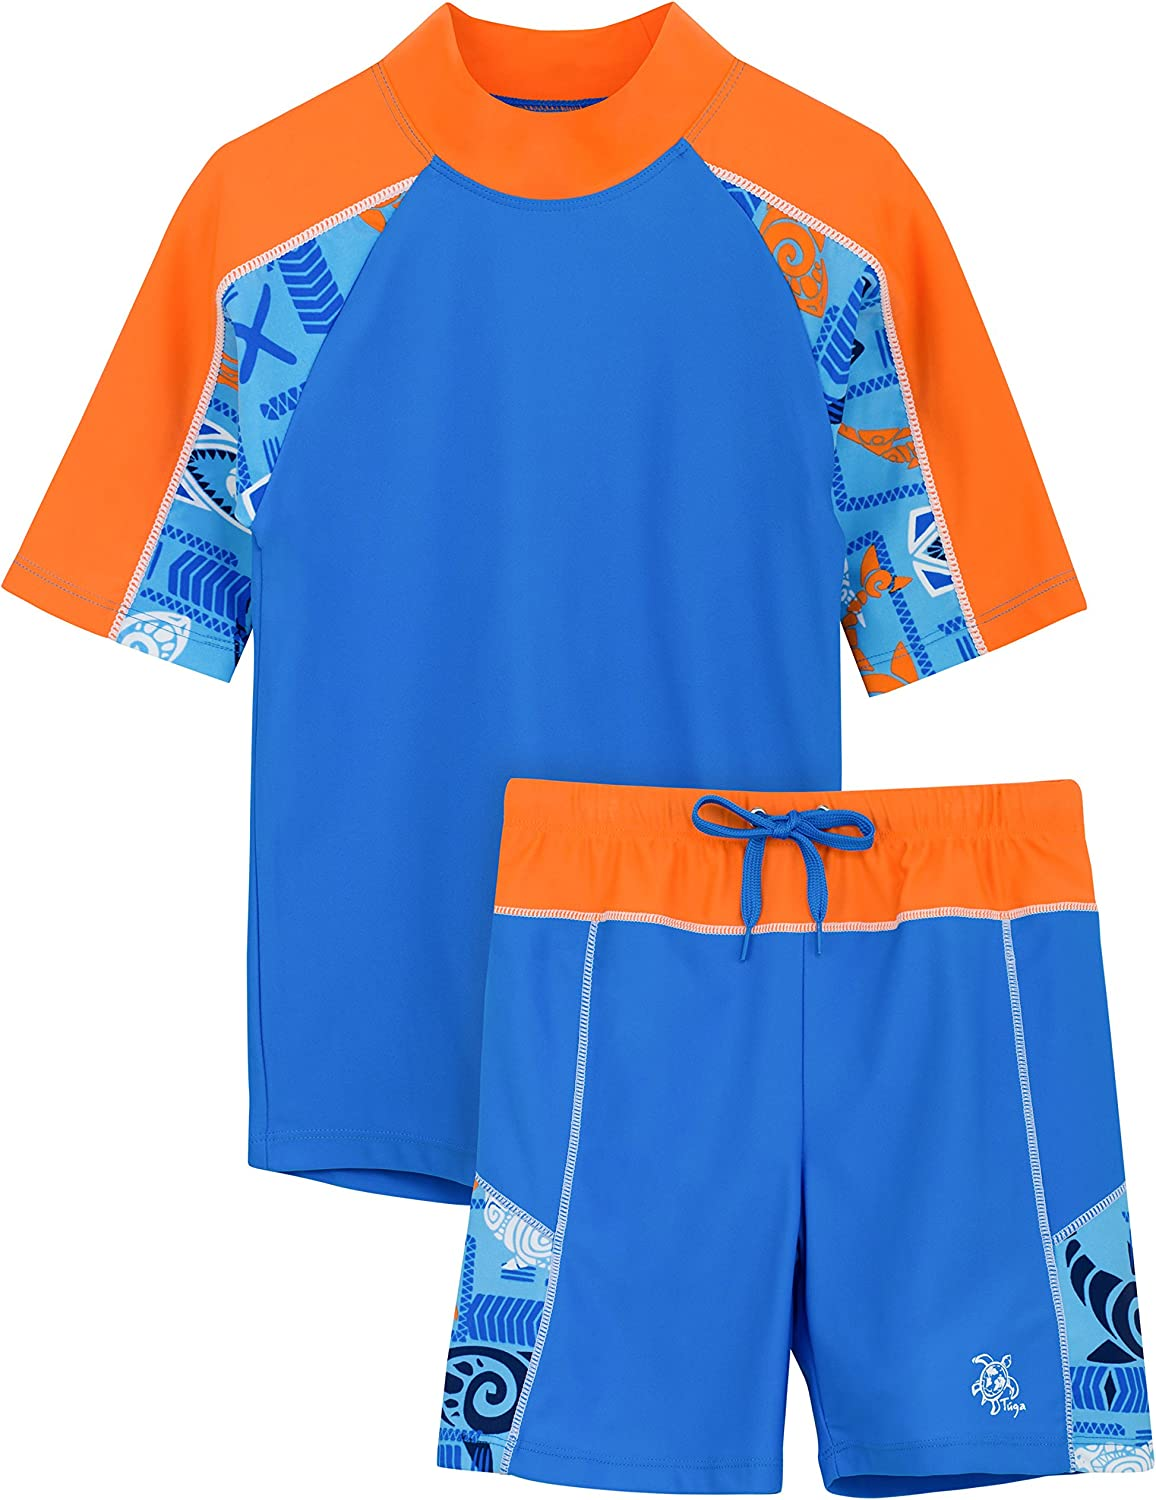 Tuga Boys Two-Piece Short Sleeve Swim Suit Set 2-14 Years UPF 50 Swimwear